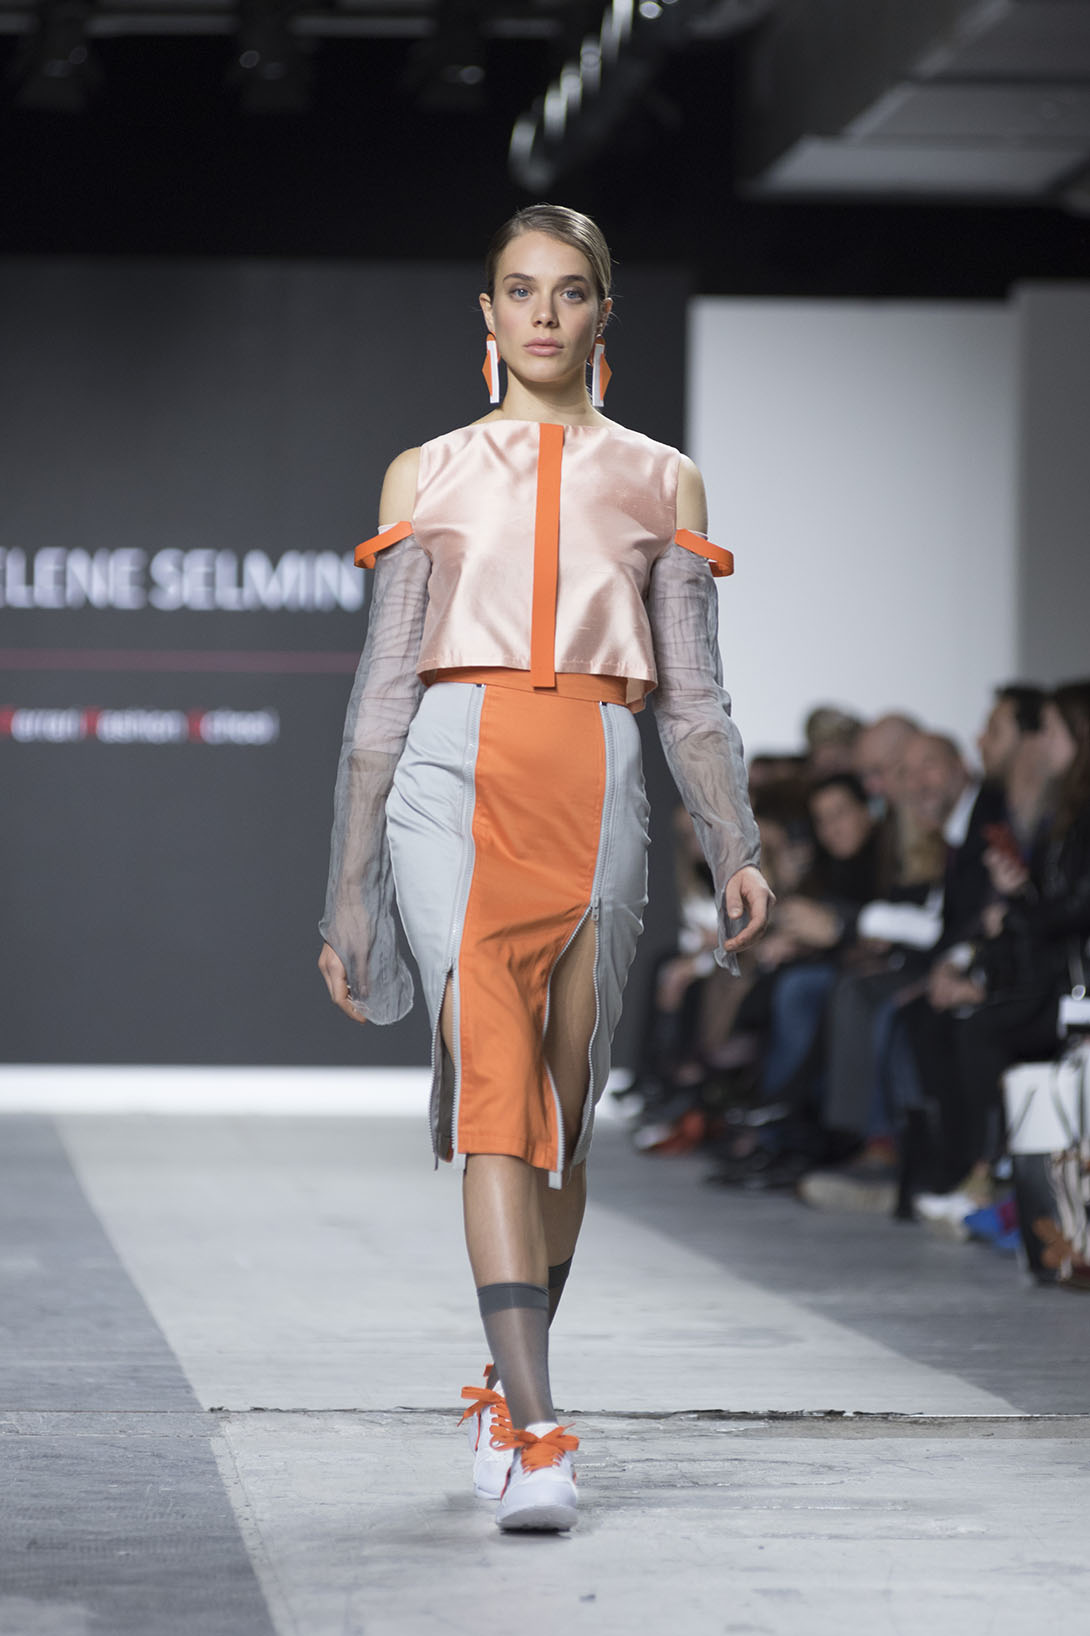 Fashion Designer: Selene Selmin - Fashion Graduate Italia Fashion Show - Ferrari Fashion School